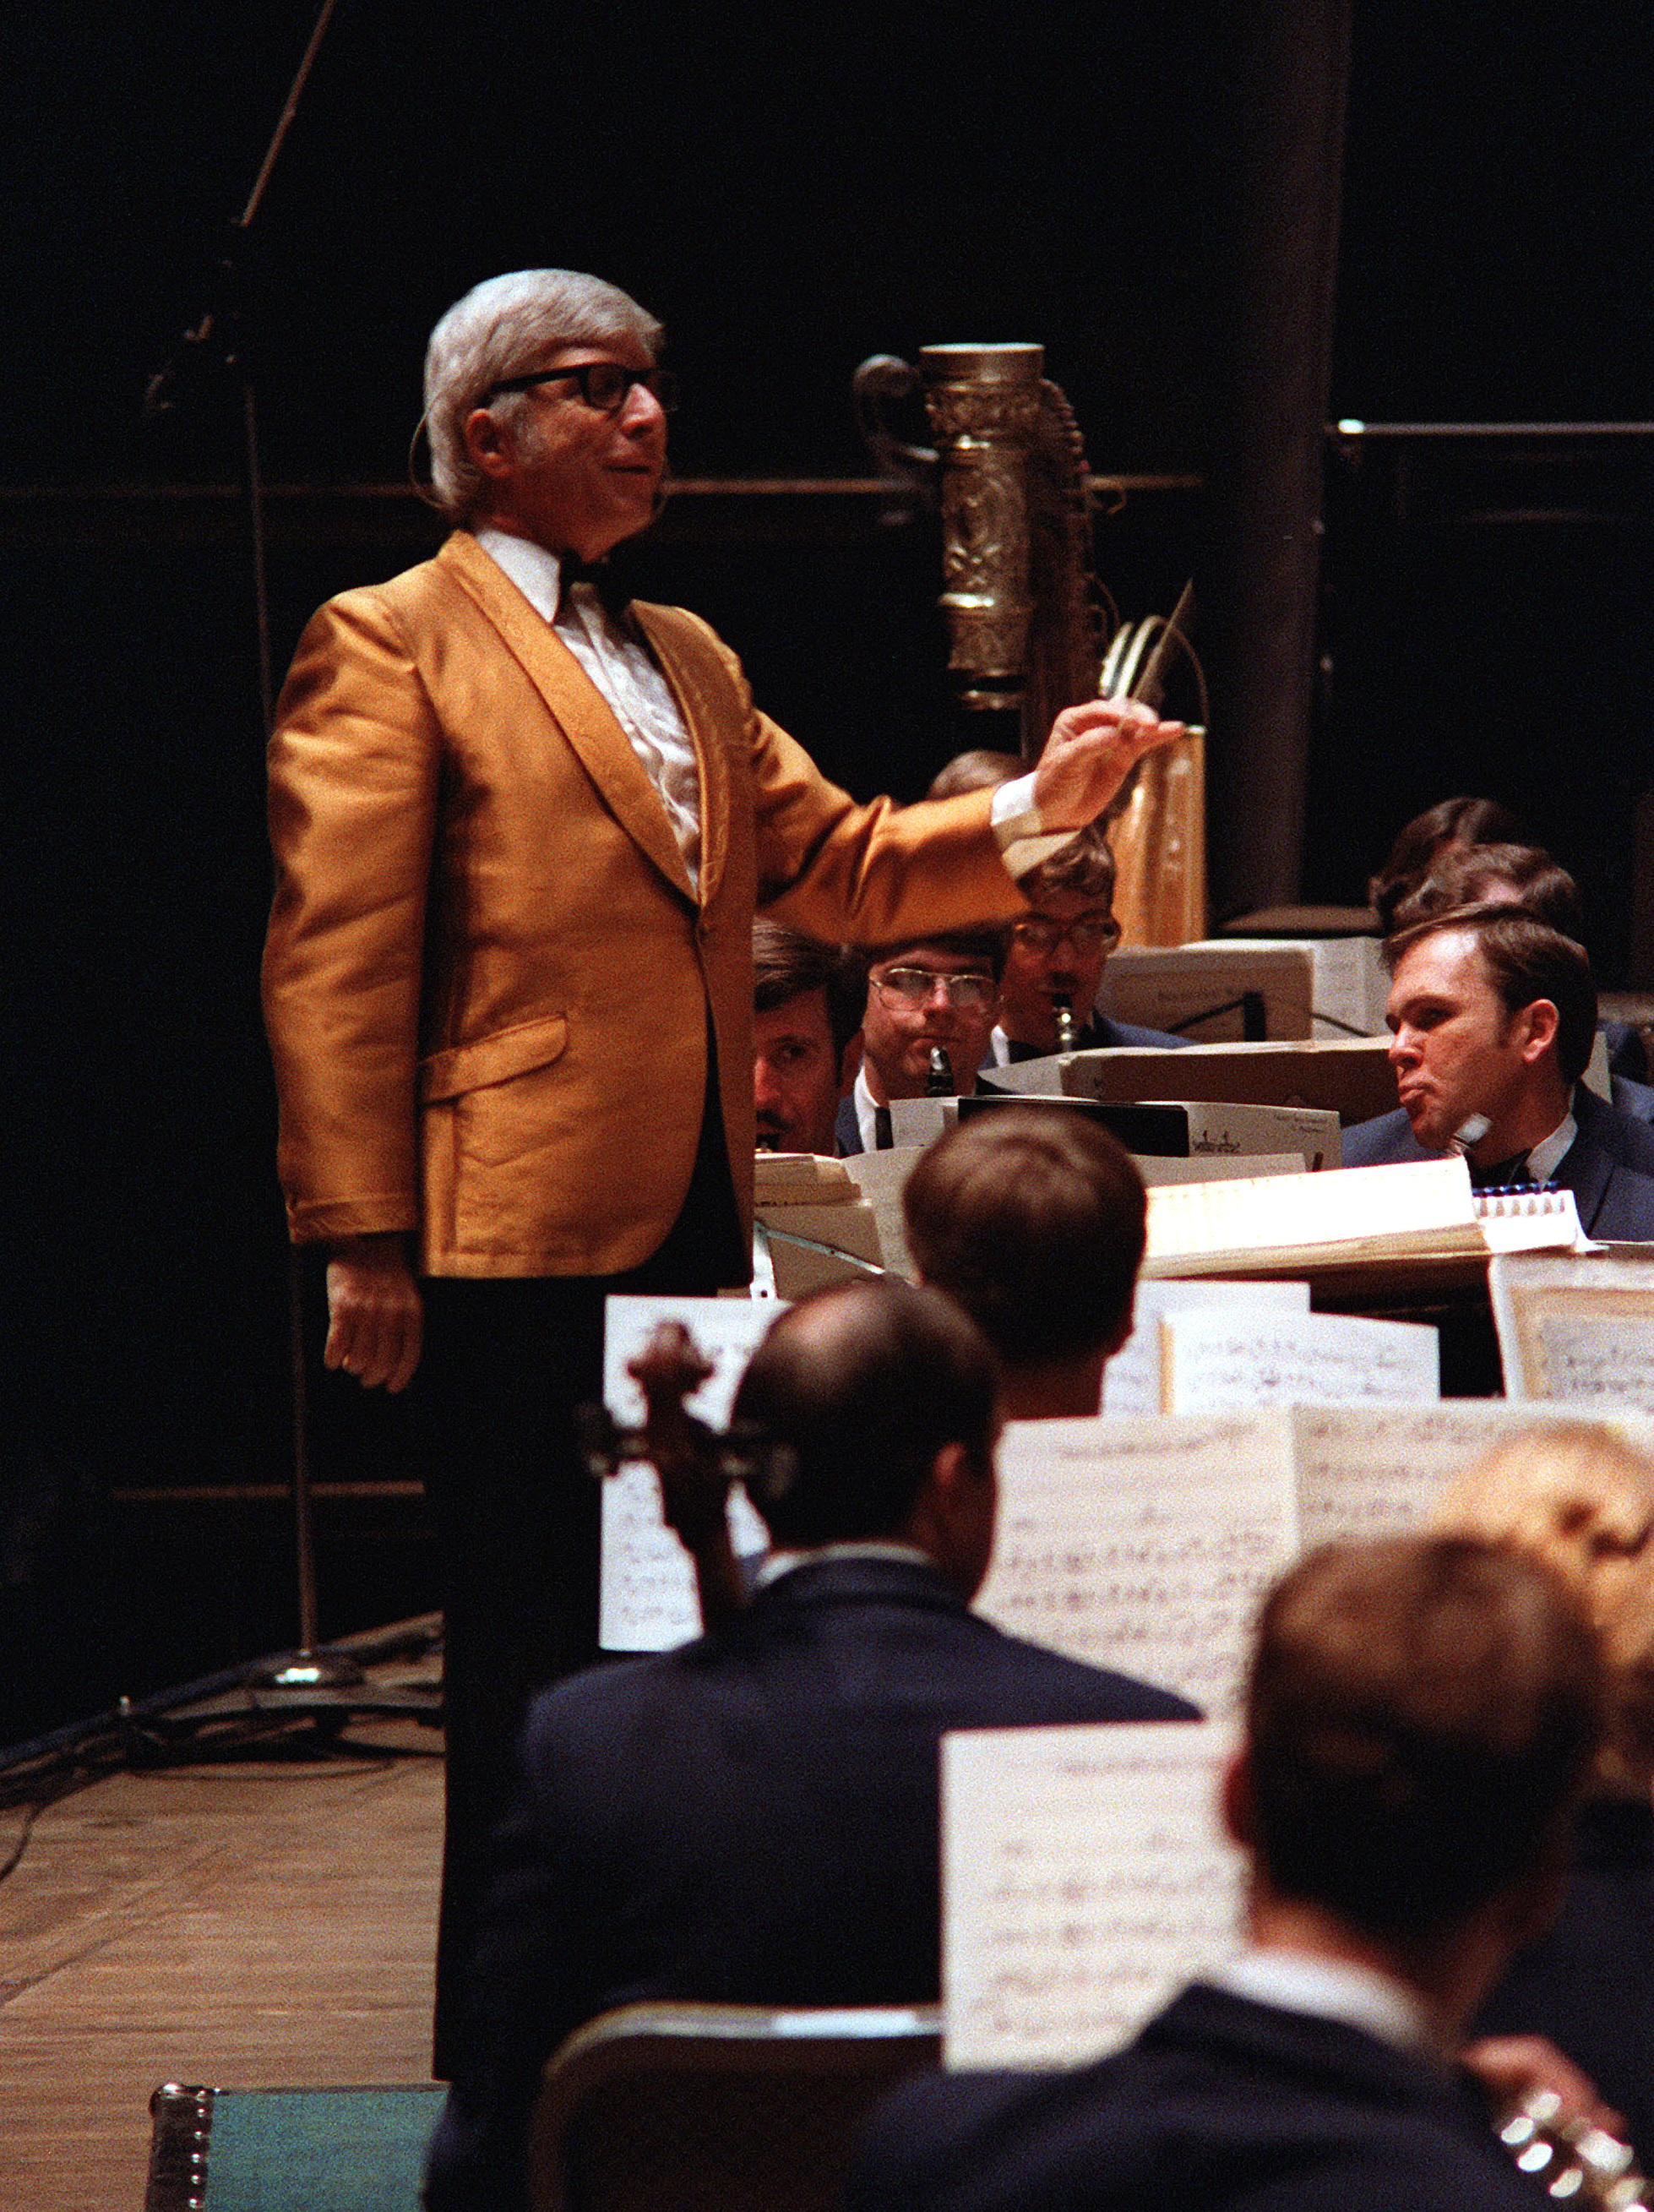 Bernstein guest conducting the [[United States Air Force Band|U.S. Air Force Band]] in 1981